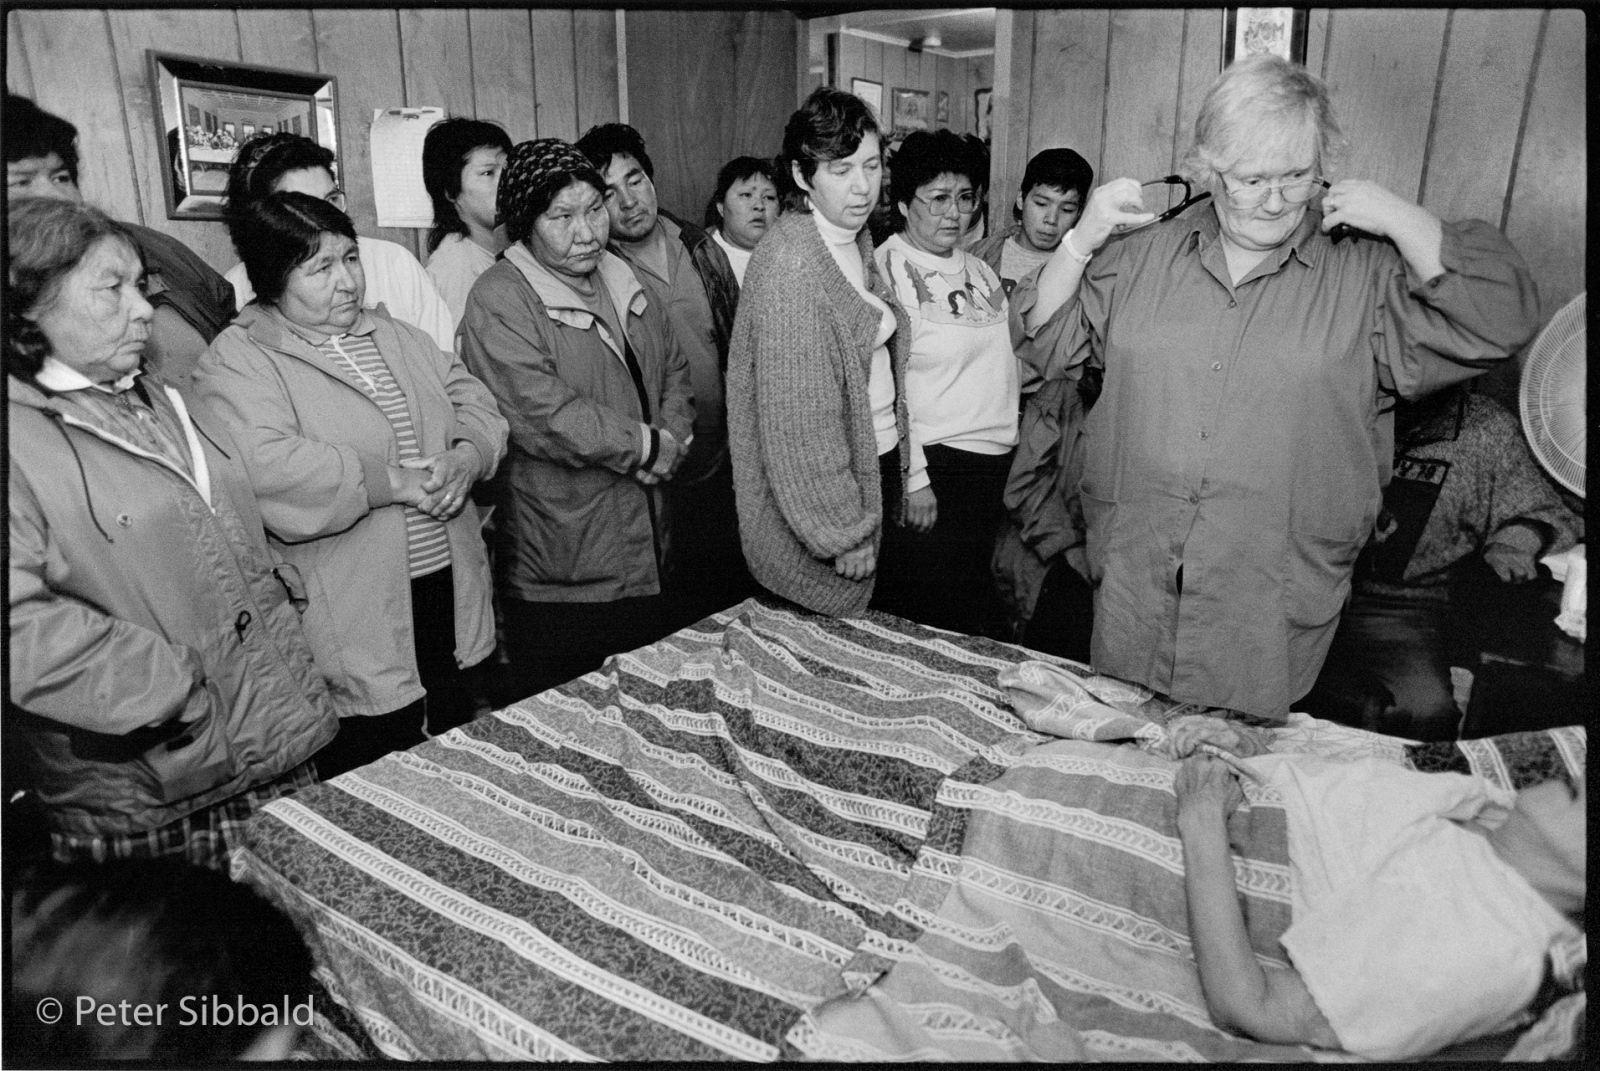 Close friends and family members gather at Mani Pasteen's deathbed to await nurse Barbara Lethbridge's official pronouncement of death, Sheshatshiu, Nitassinan/Labrador. Copyright Peter Sibbald, 1993.